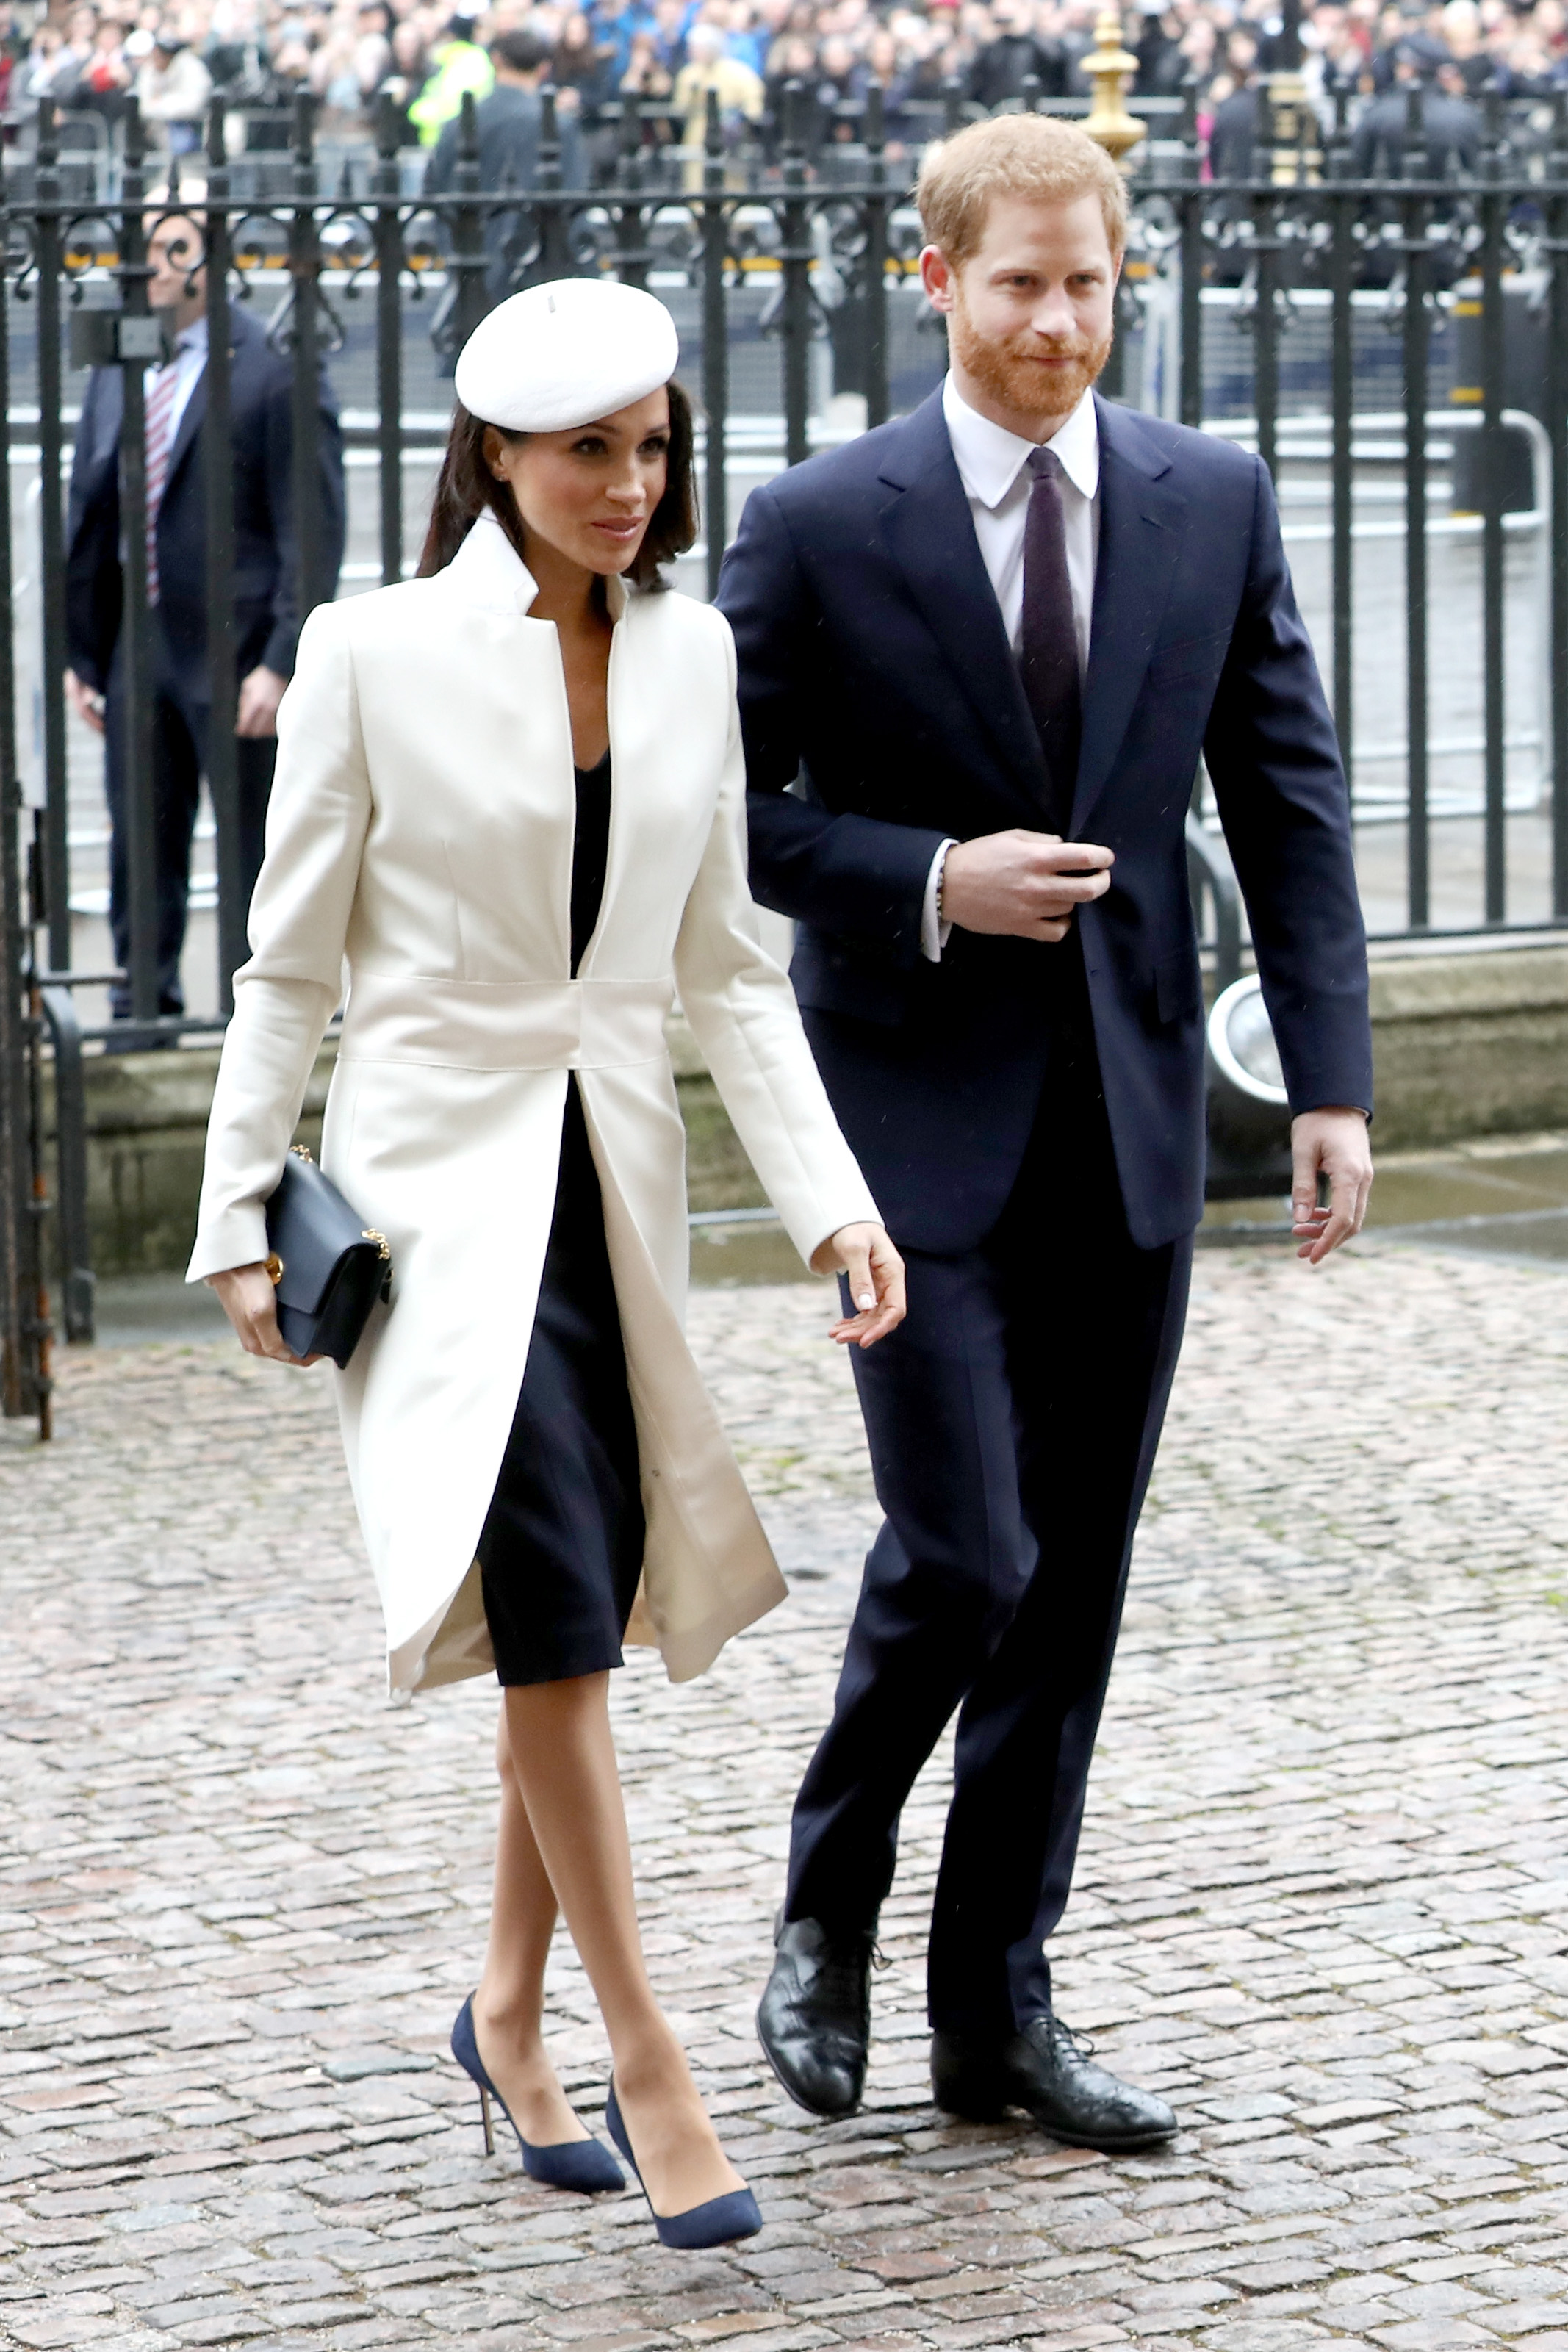 prince harry meghan markle s wedding invitations are stunning their guest list is officially set access https www accessonline com articles prince harry meghan markles wedding invitations are stunning their guest list officially set